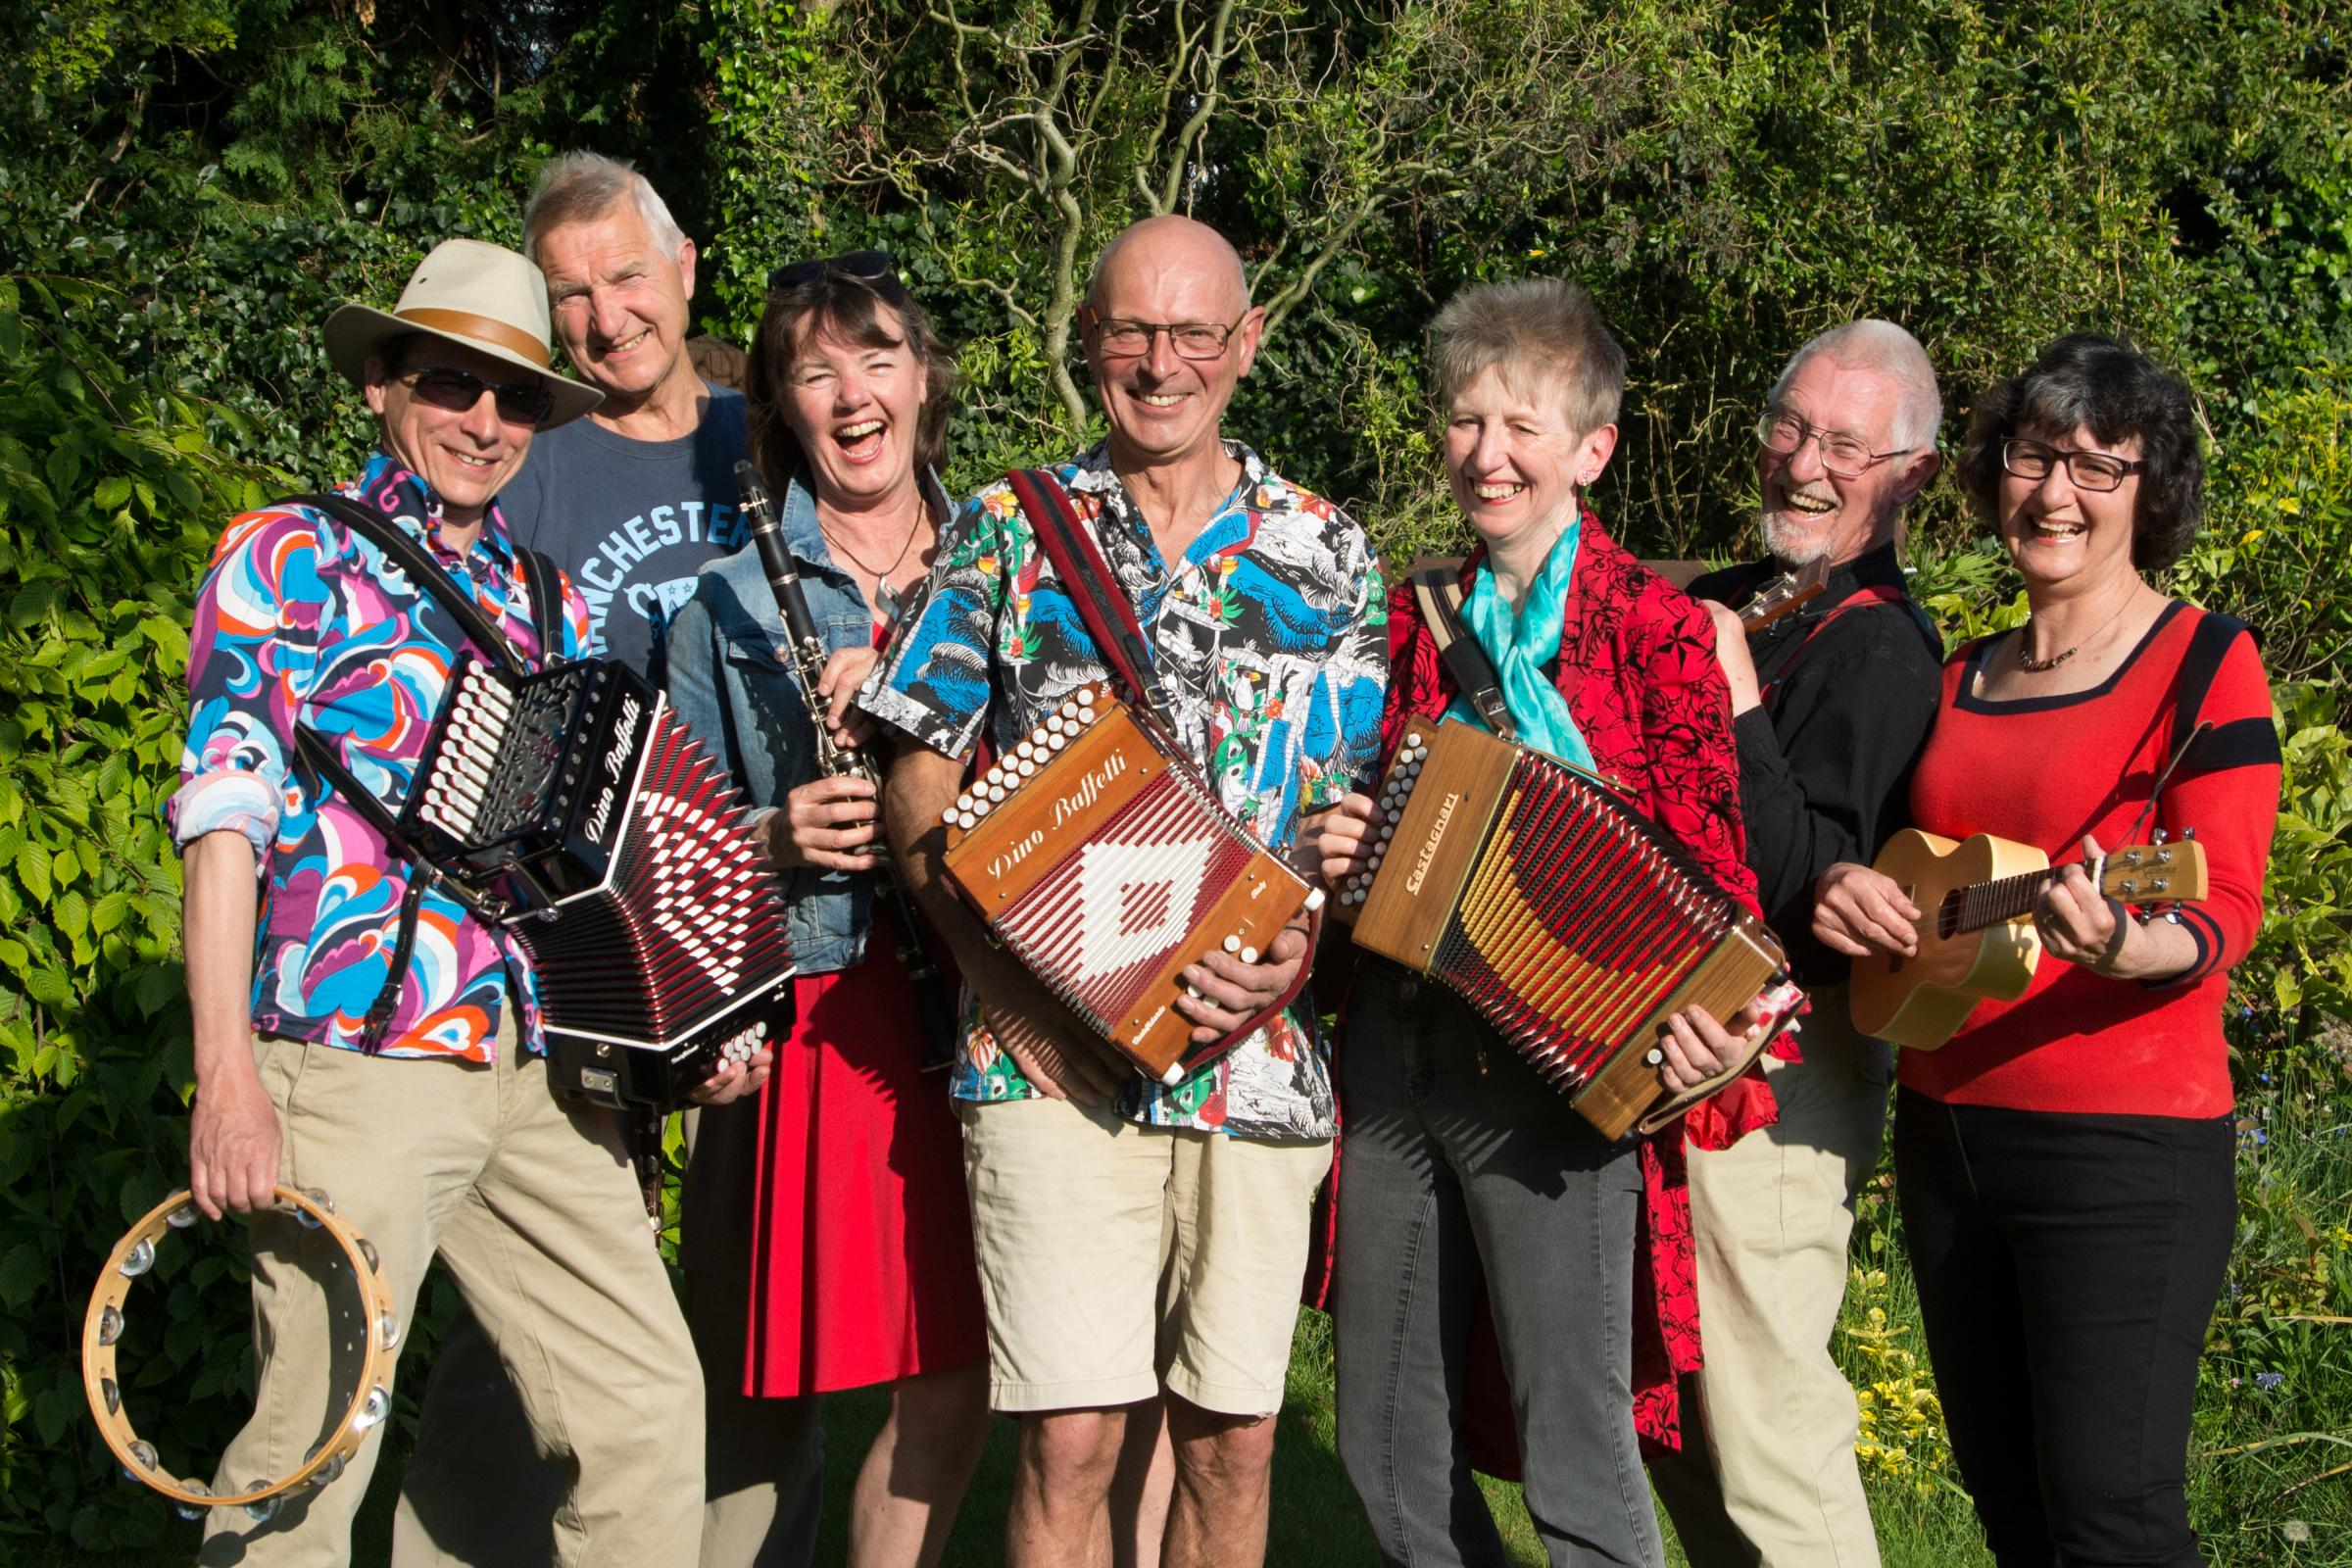 The Fizzjigs band prepares for the football-free ceilidh on June 1. Bob Richards, Steve Thomas, Anna Hayes, Peter Cartlidge, Jan Hoole, Roger Garland, Mirjana Garland.